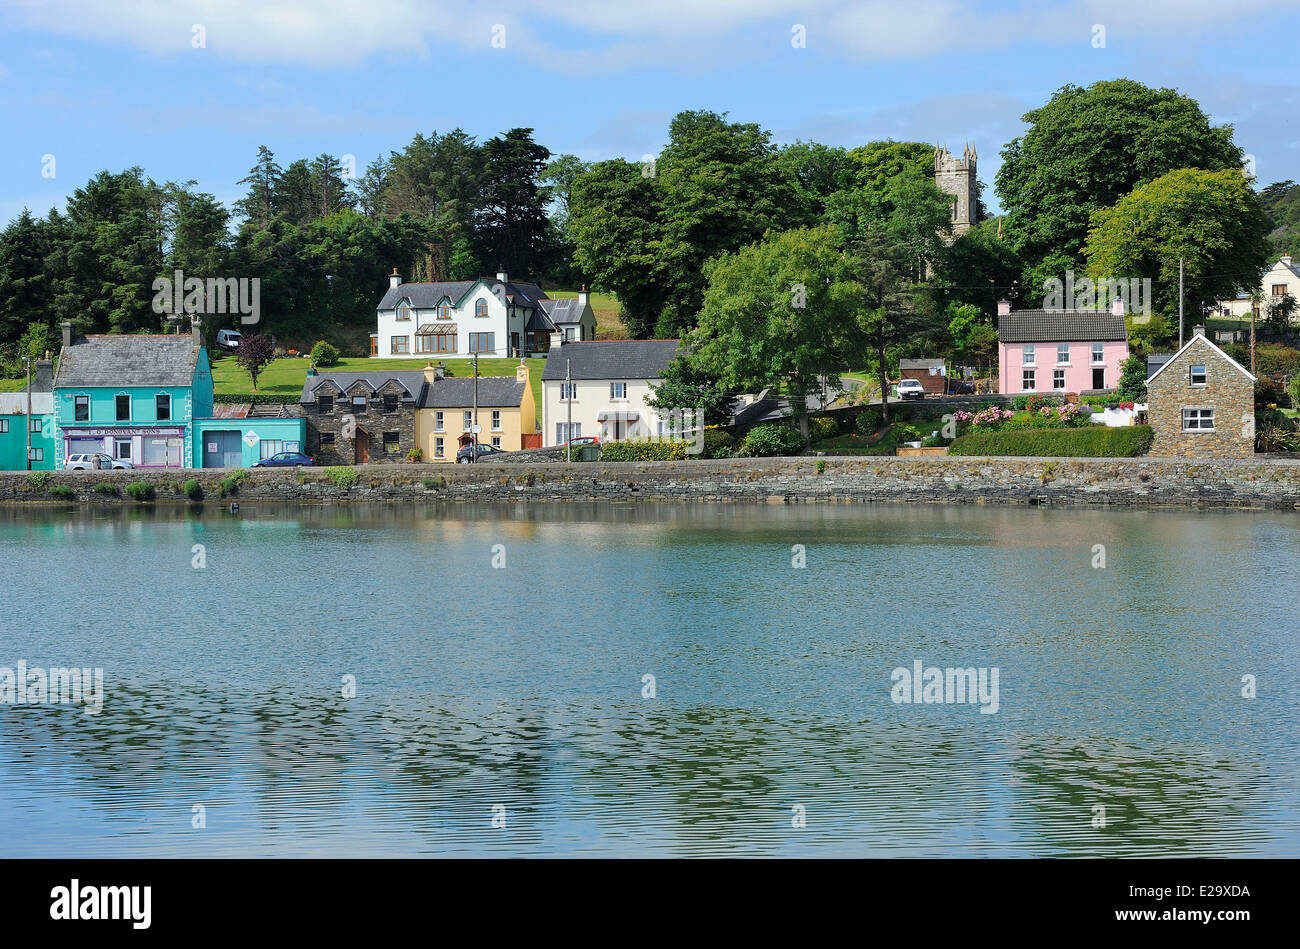 Ireland, County Cork, Union Hall Stock Photo: 70289110